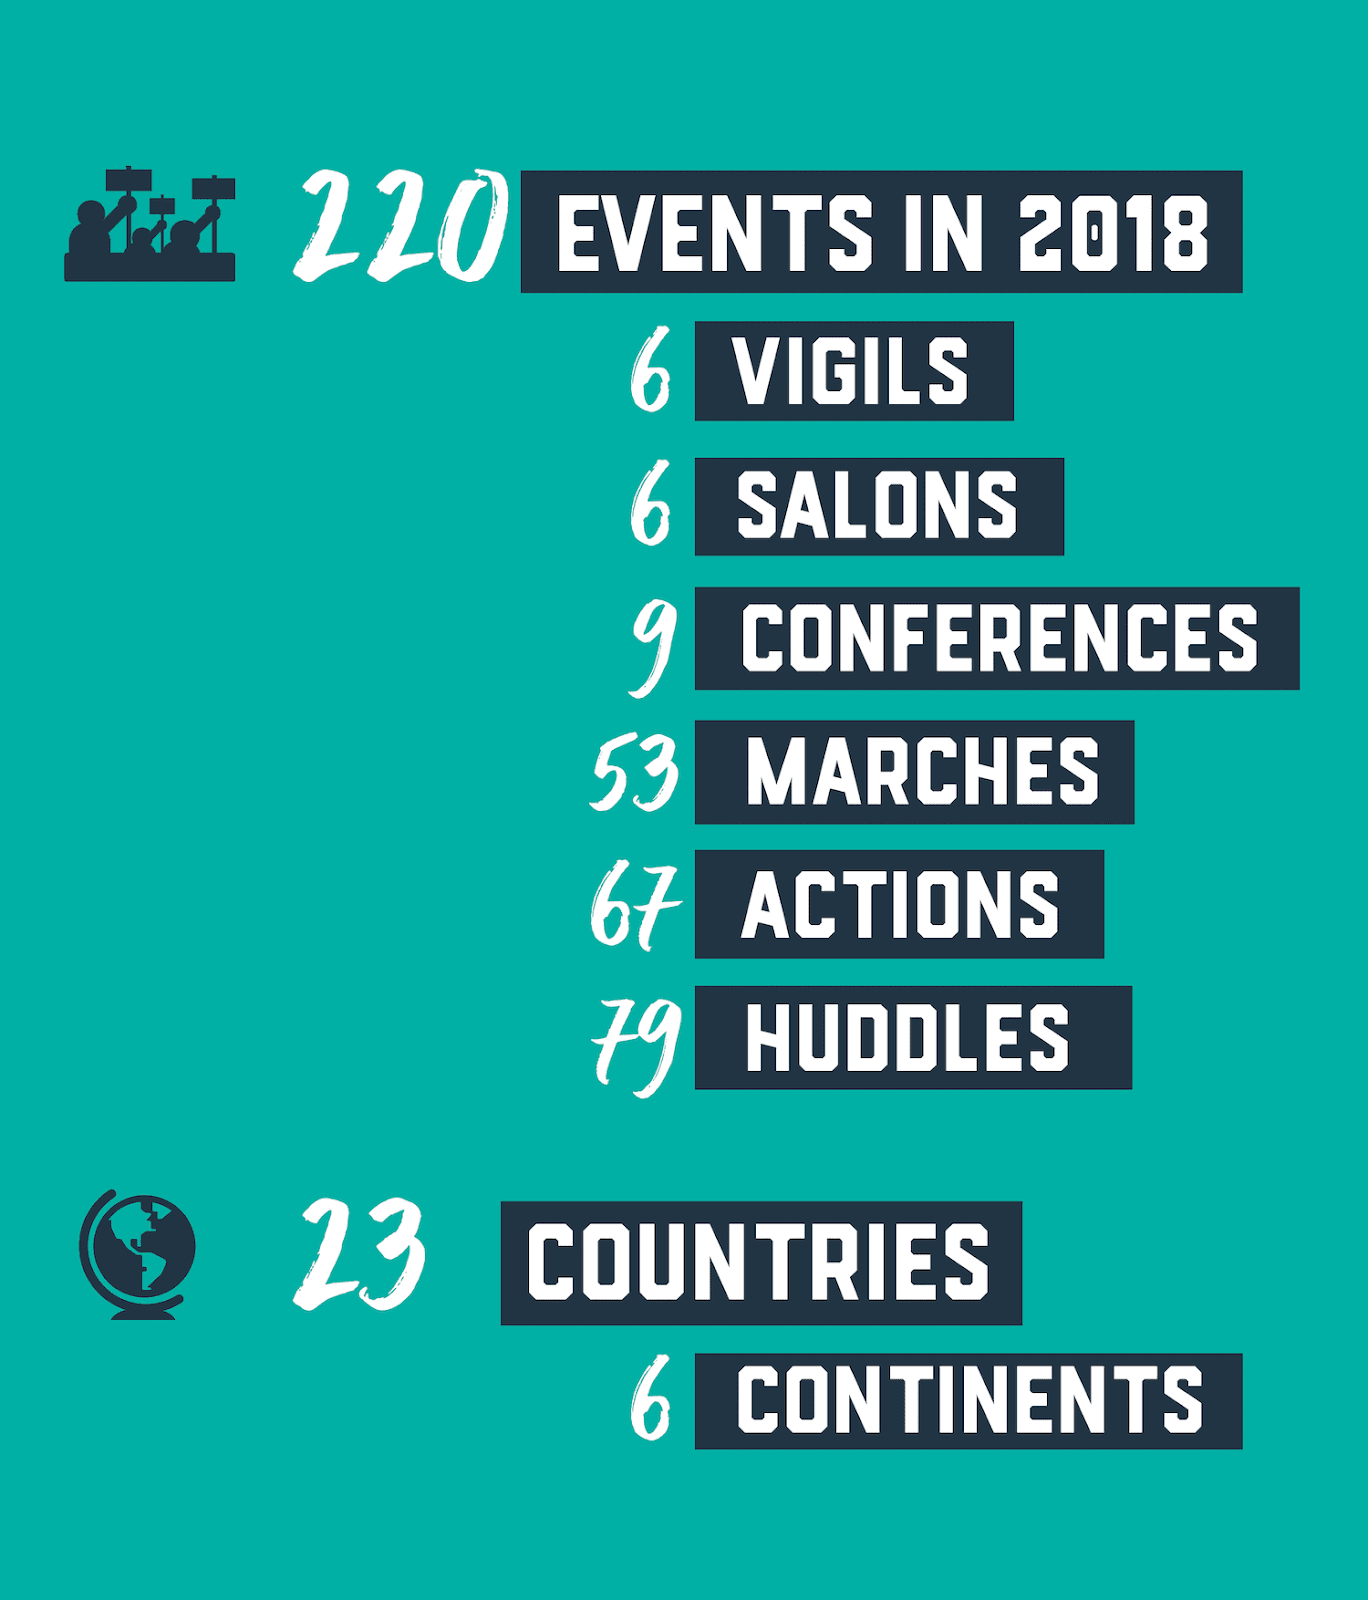 2018 a year of growth and gratitude for our global community